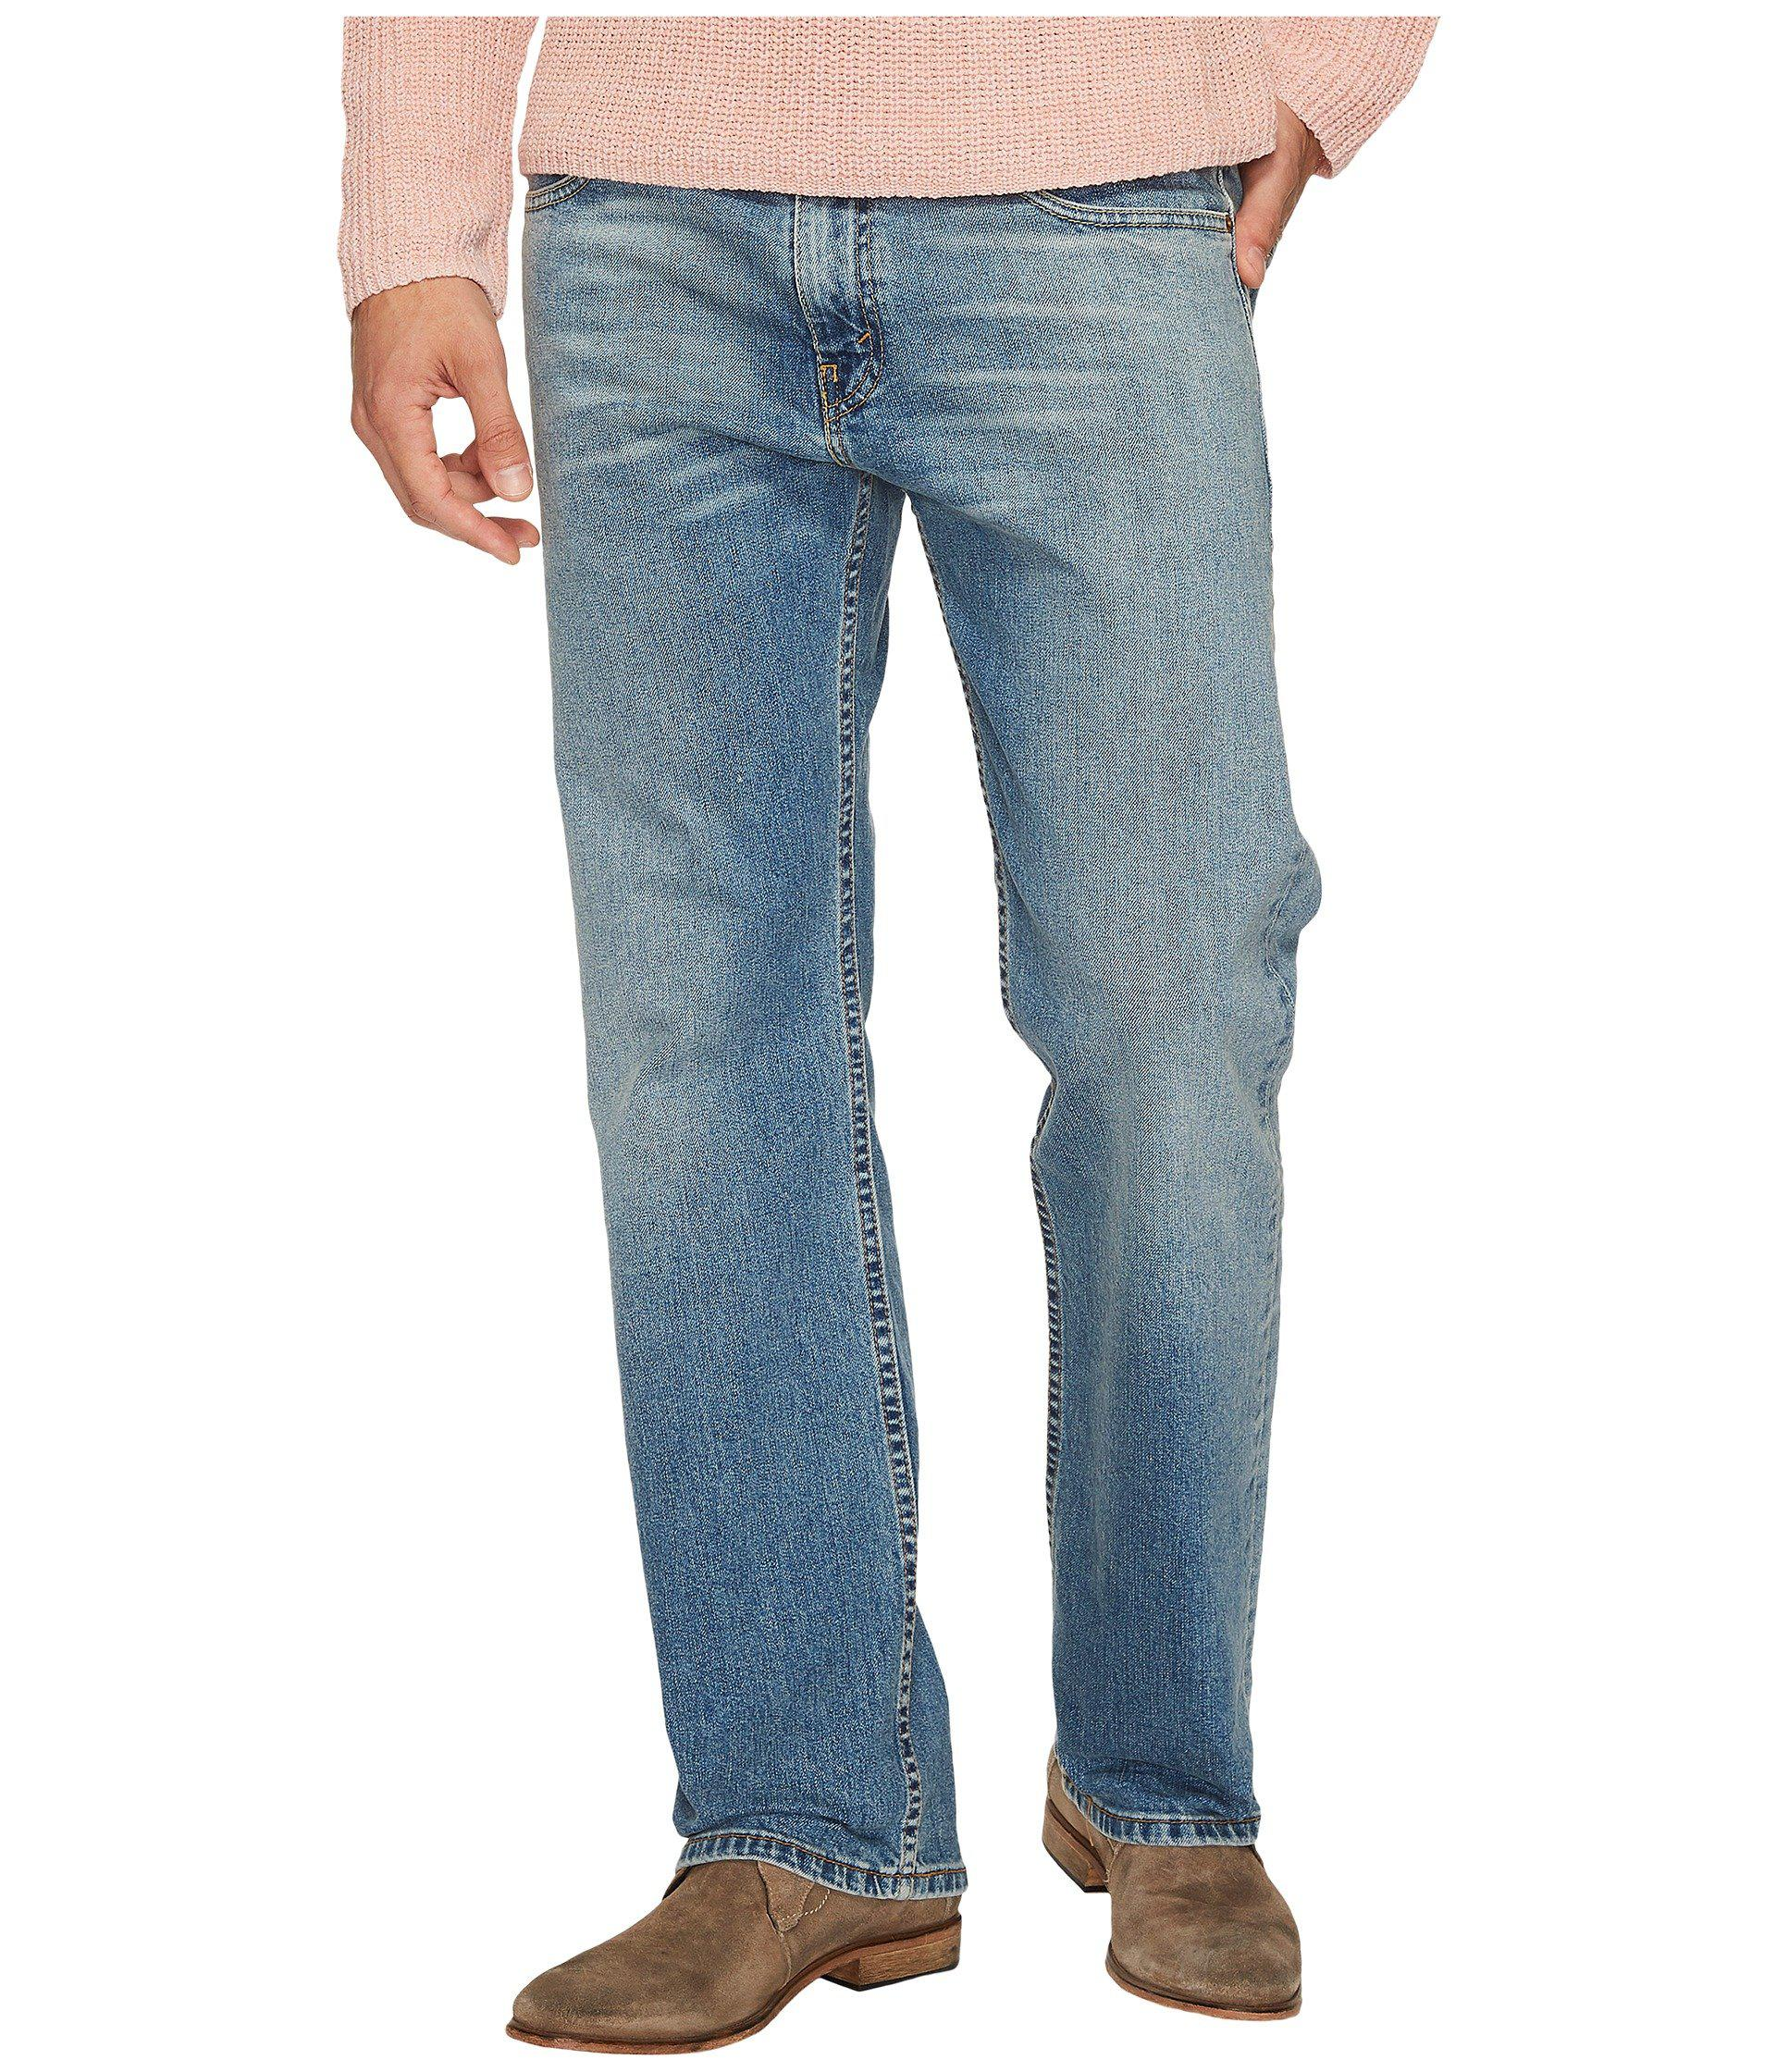 c61c47d8a71 Lyst - Levi's 569® Loose Straight Fit in Blue for Men